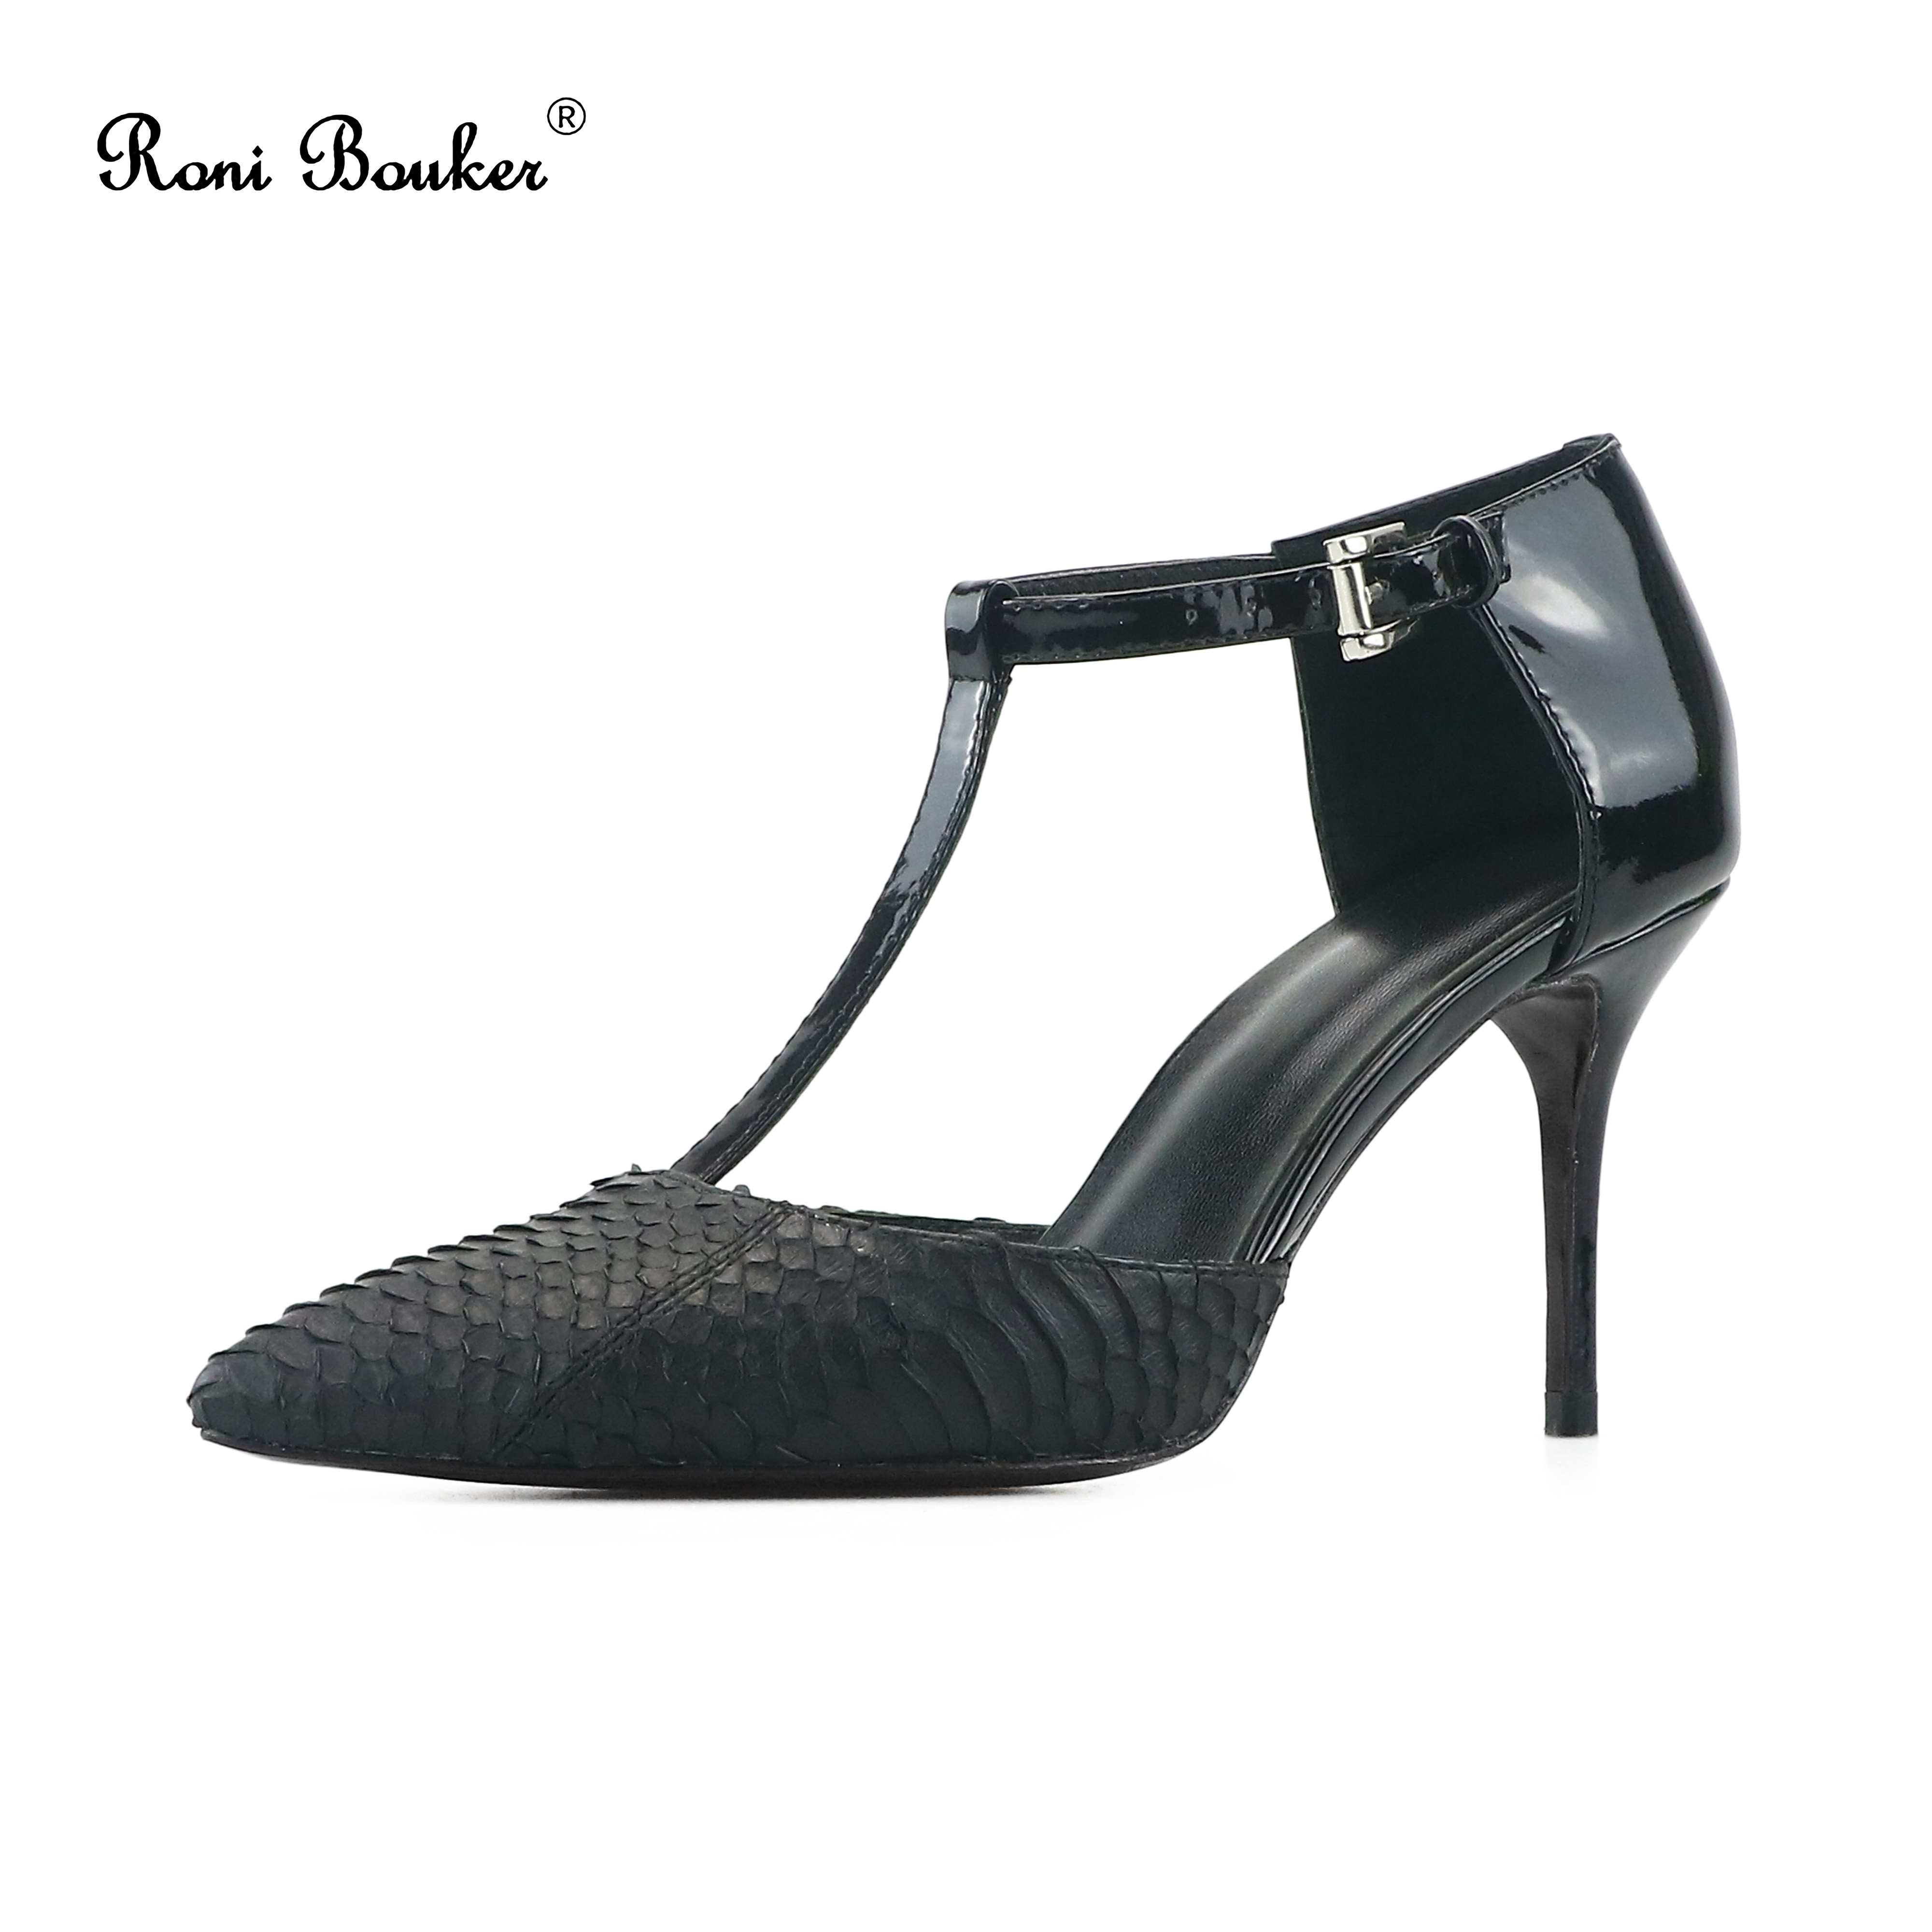 Roni Bouker Fashion Sandals Women Casual Pointed Toes Buckle Strap Stilettos Heel Woman Dress Party High Heels Shoes New BlackRoni Bouker Fashion Sandals Women Casual Pointed Toes Buckle Strap Stilettos Heel Woman Dress Party High Heels Shoes New Black